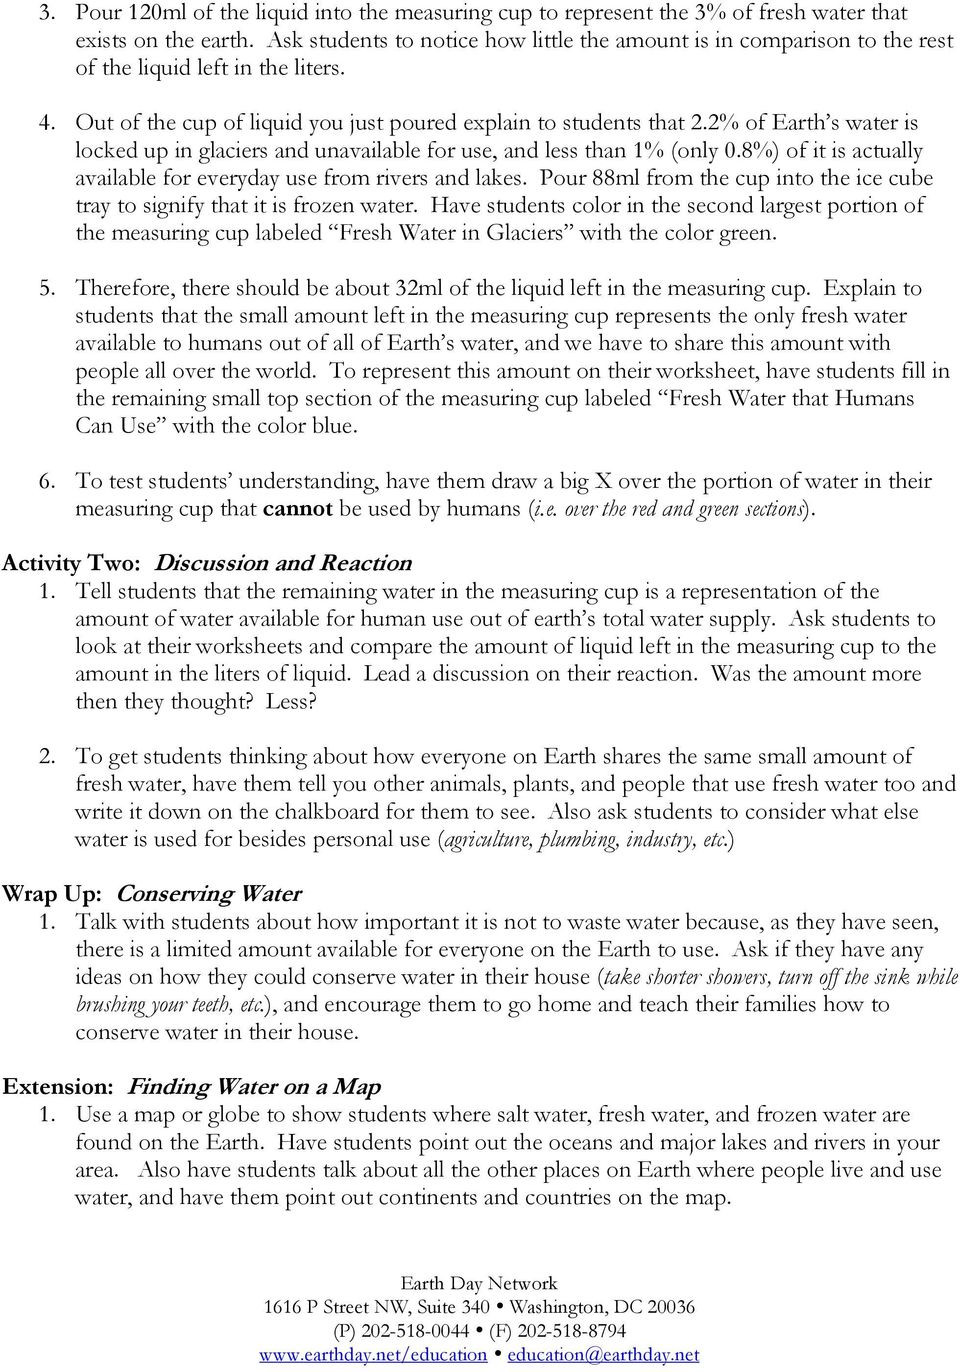 Planet Earth Freshwater Worksheet Water Scarcity ashley Schopieray Pdf Free Download